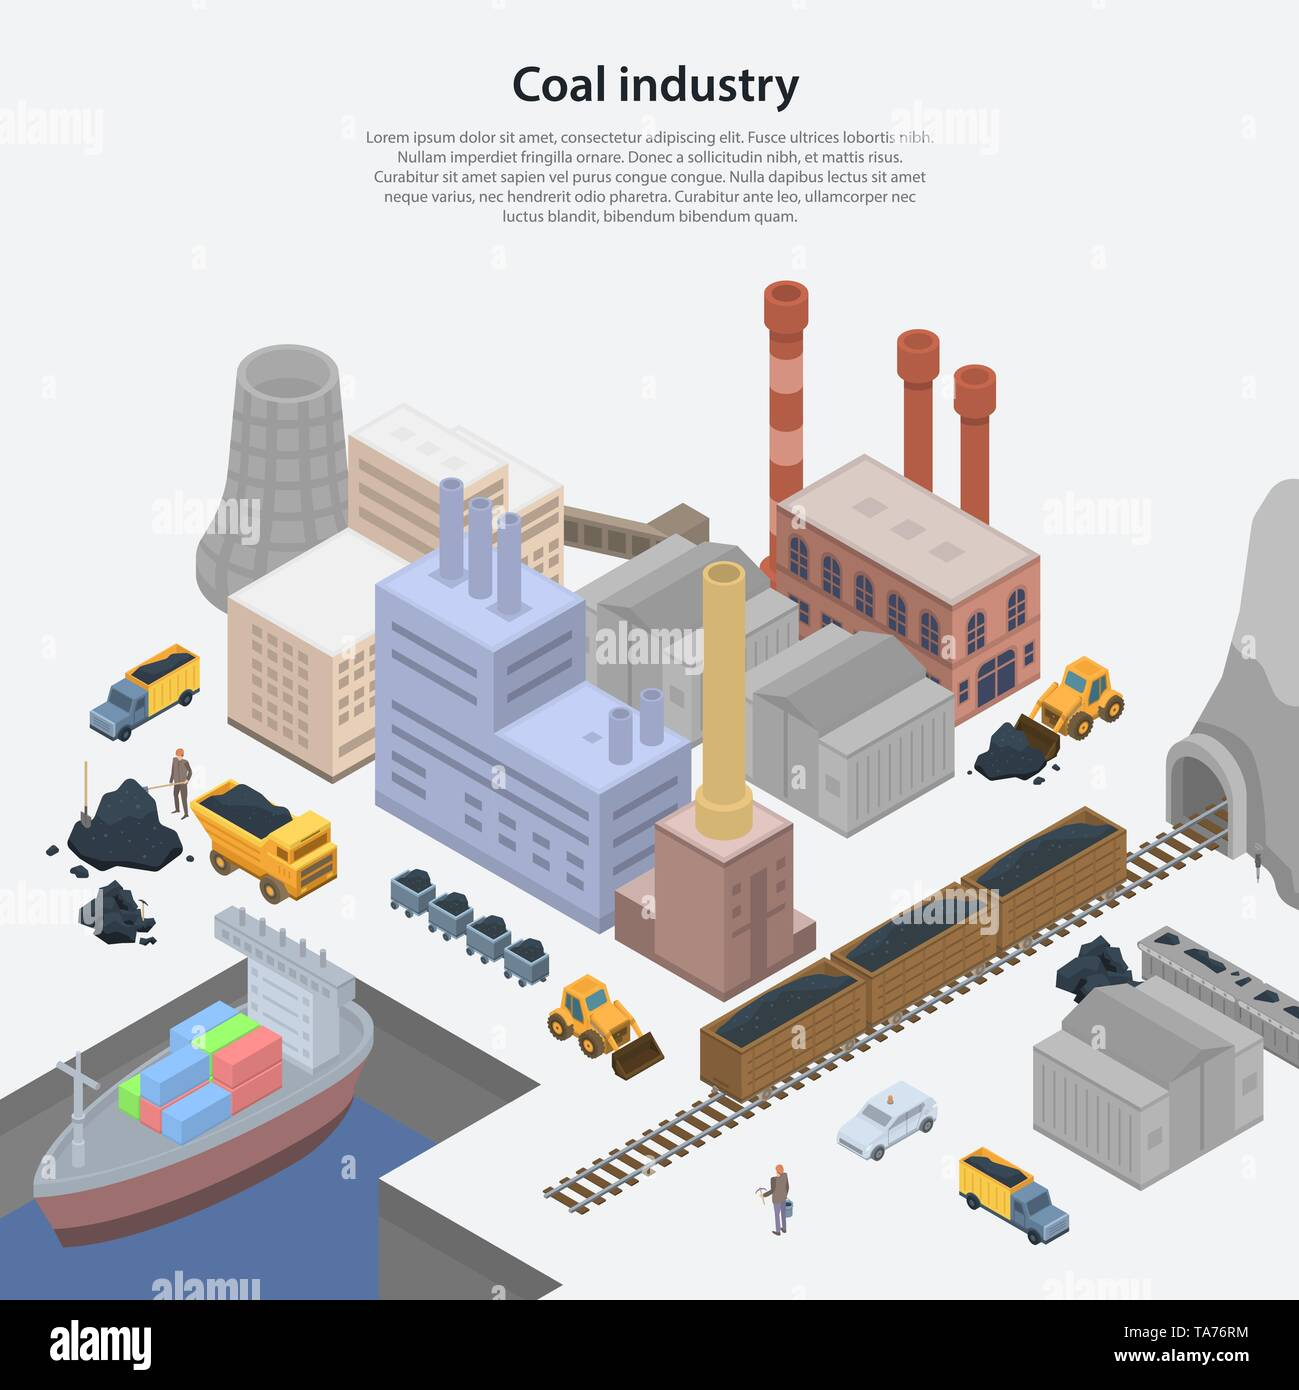 Coal industry plant concept background, isometric style - Stock Image